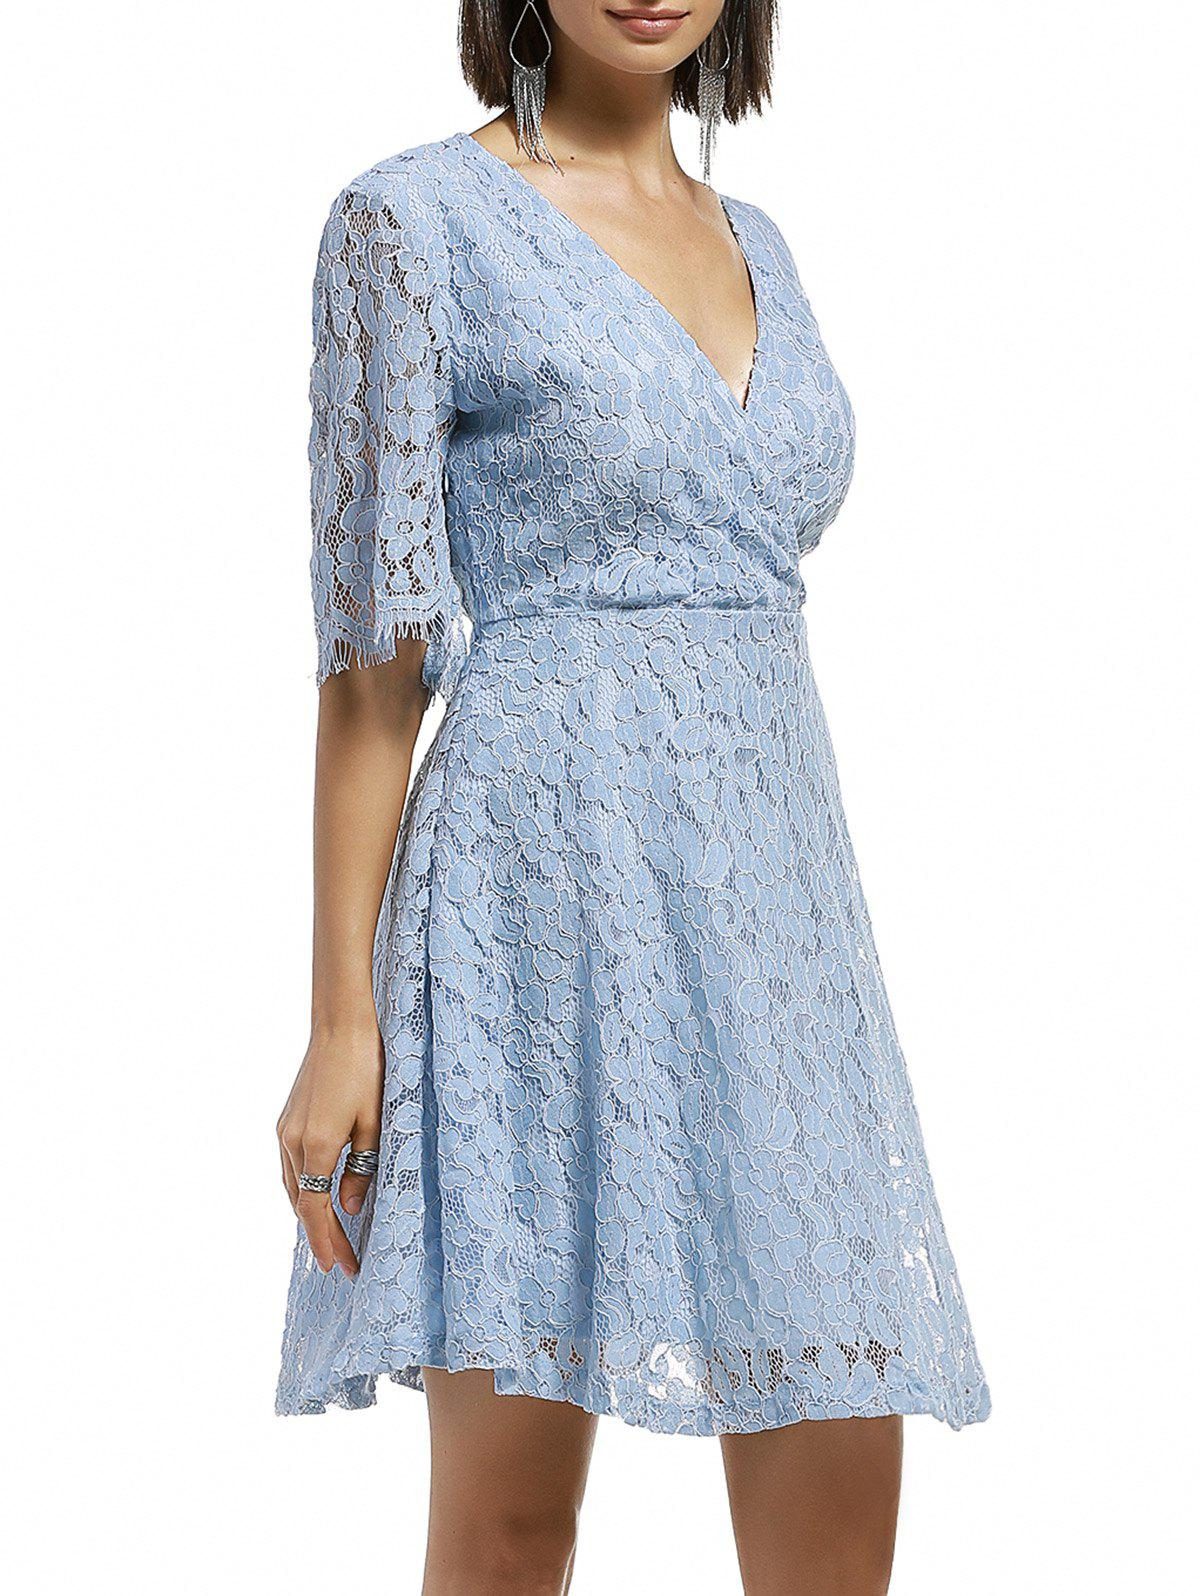 Plunging Neck Surplice Floral Lace Dress газовая плита simfer f66gw41001